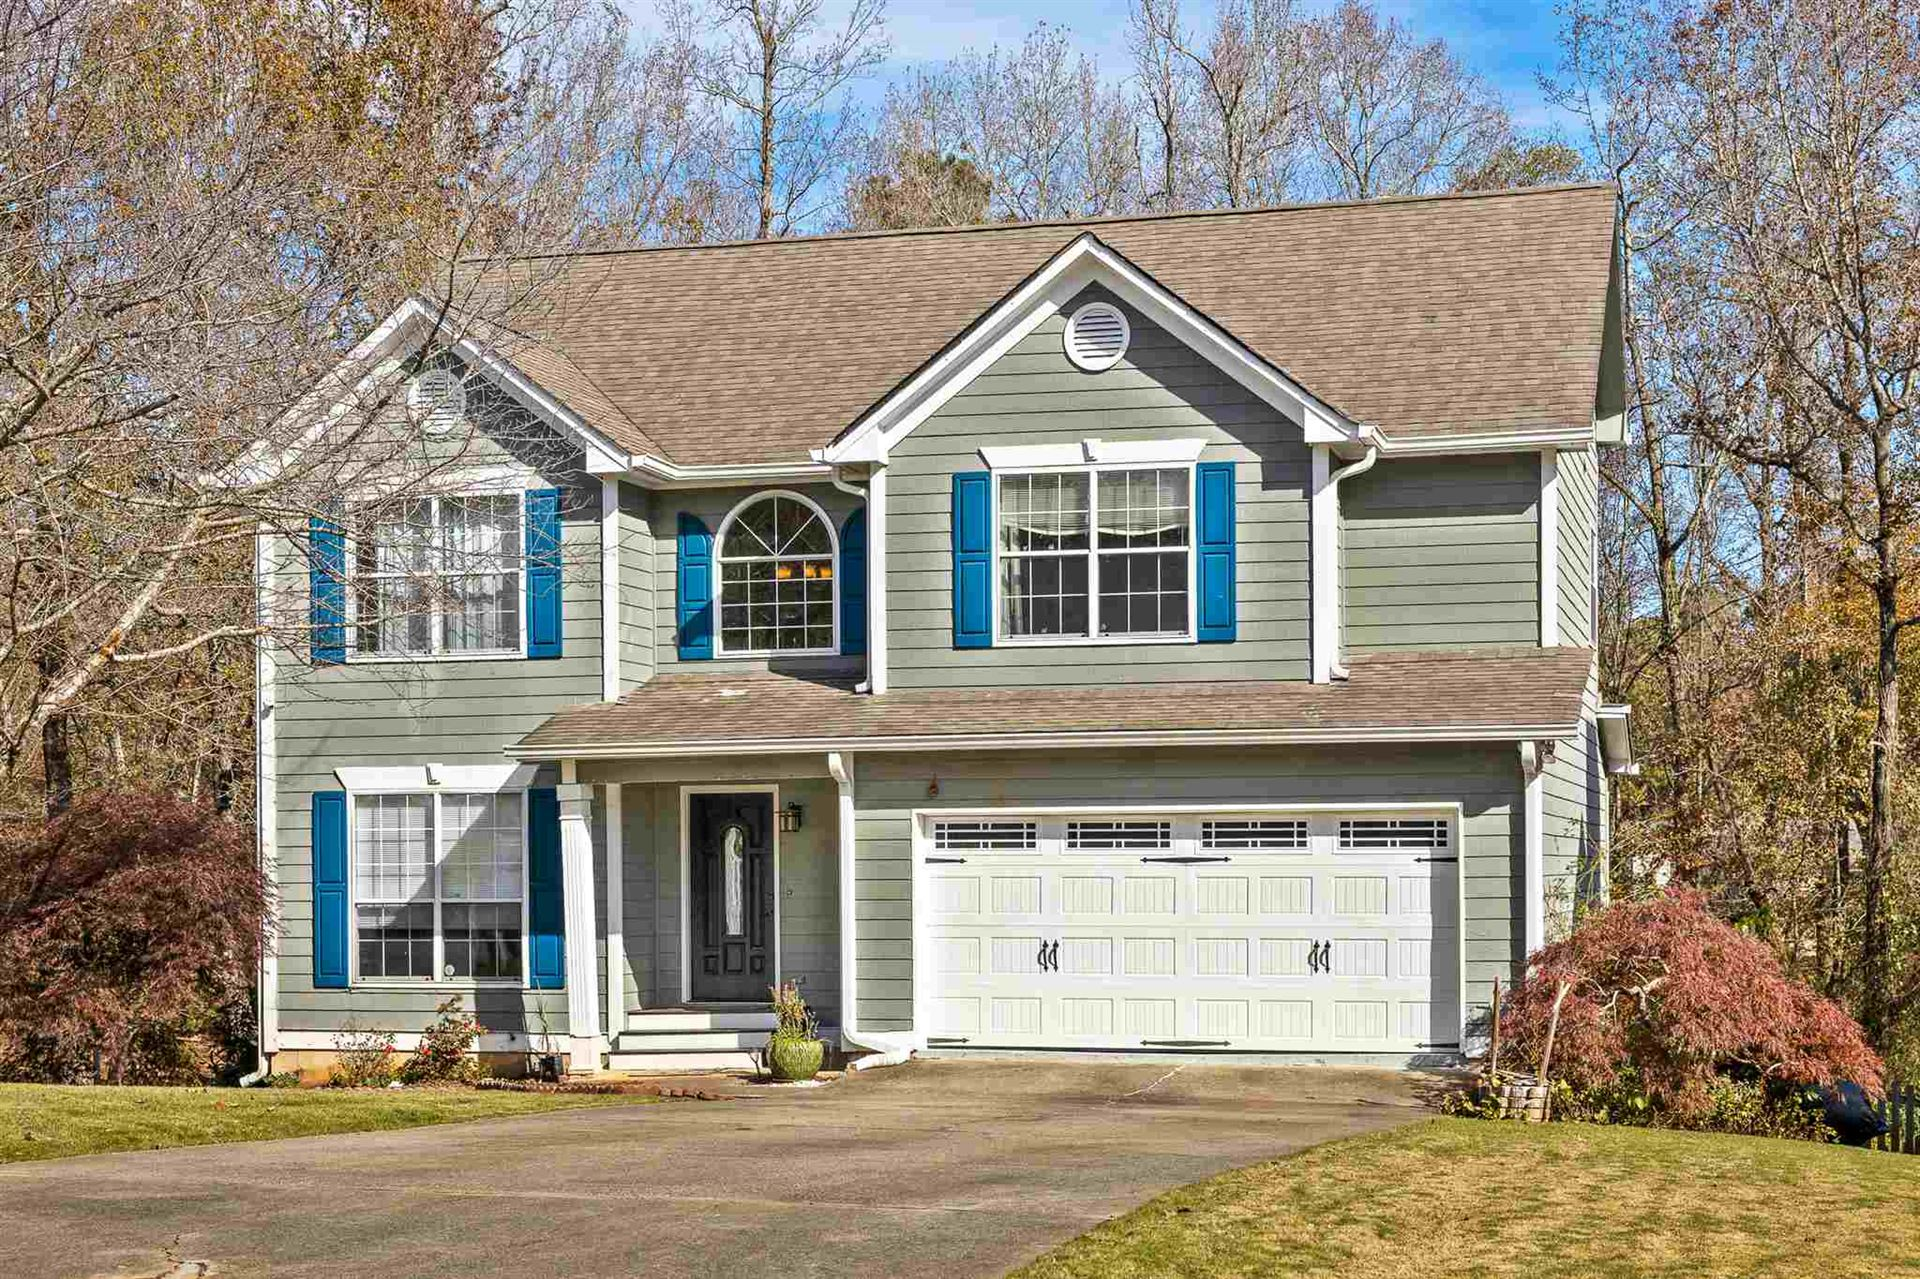 2455 Fosters Mill Ct, Suwanee, GA 30024 - MLS#: 8893682